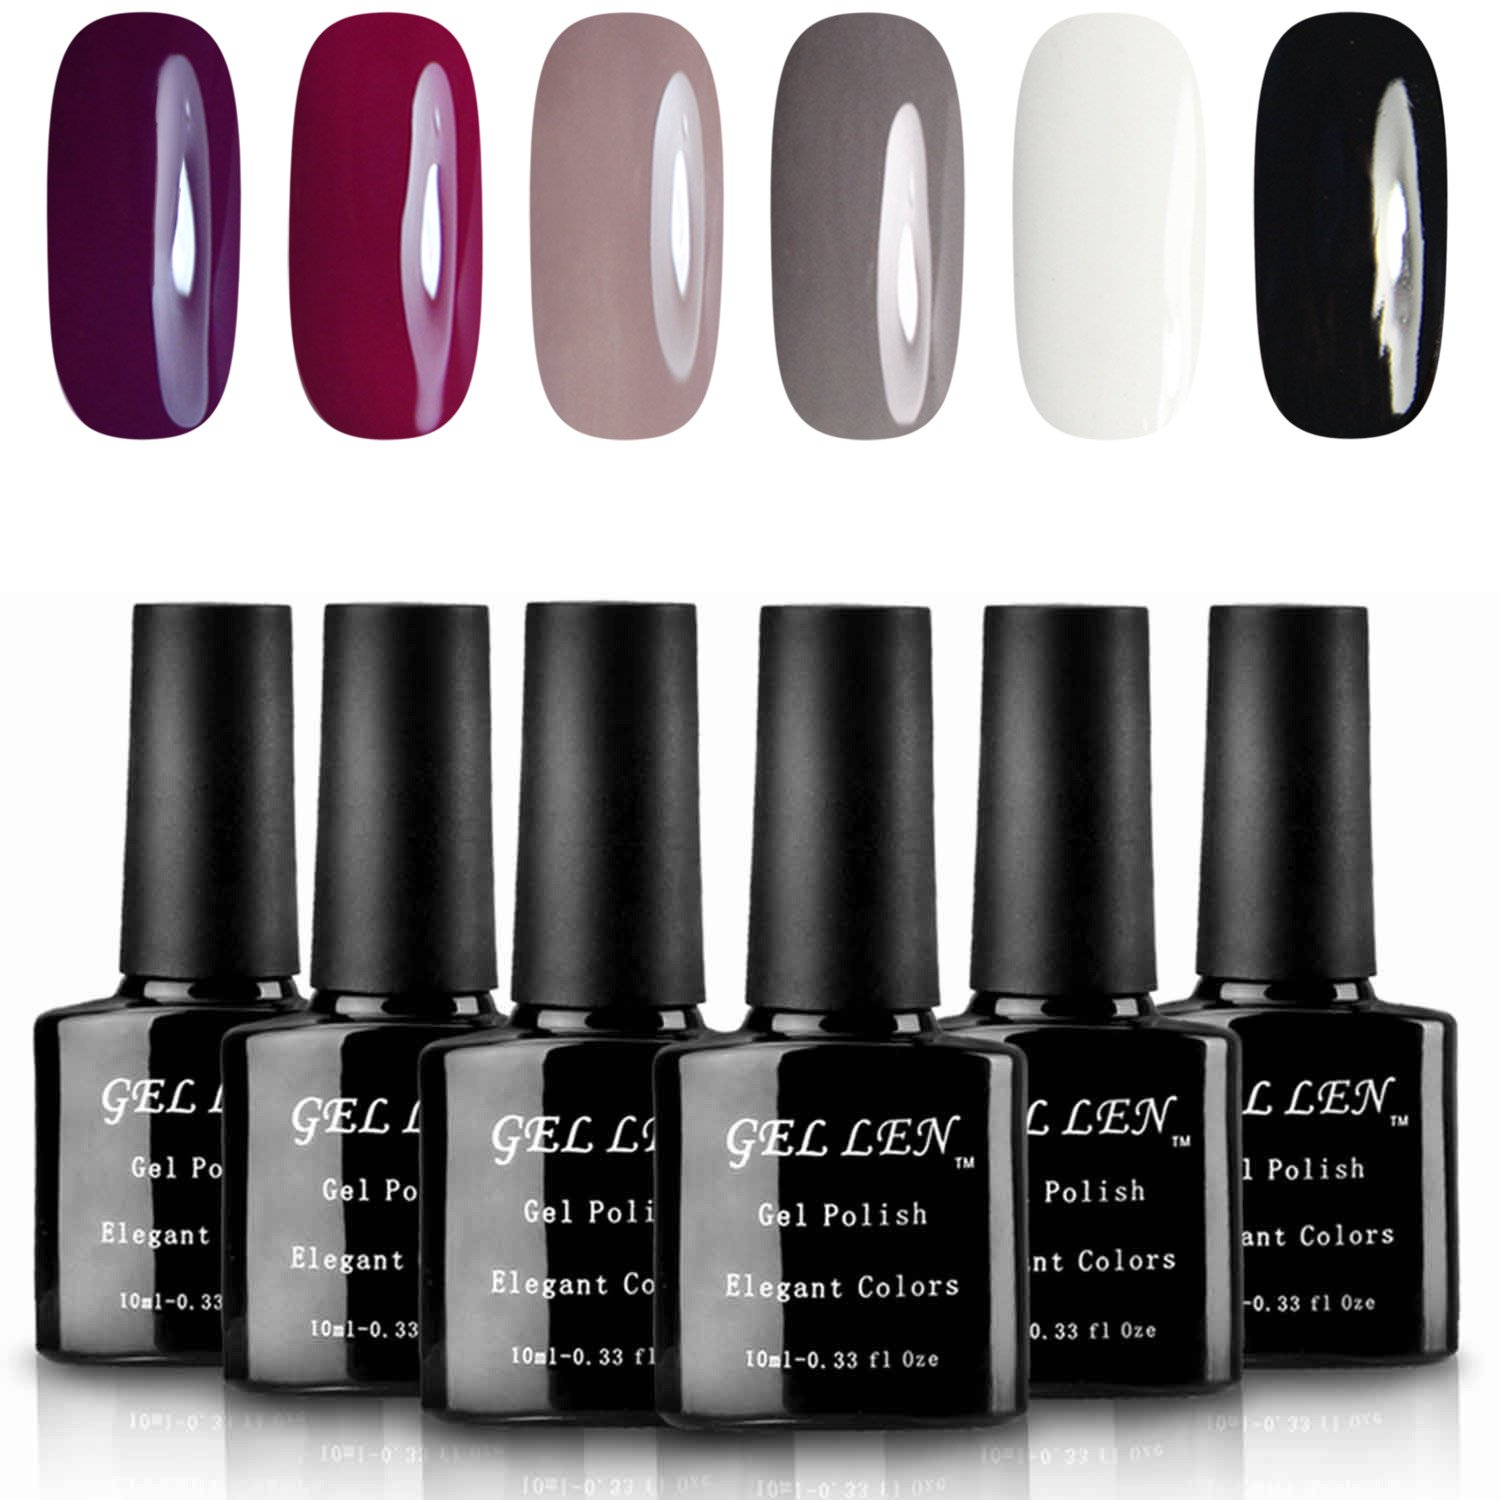 Gellen Classic Elegant Colors UV Gel Nail Polish Set, Pack of 6 Colors